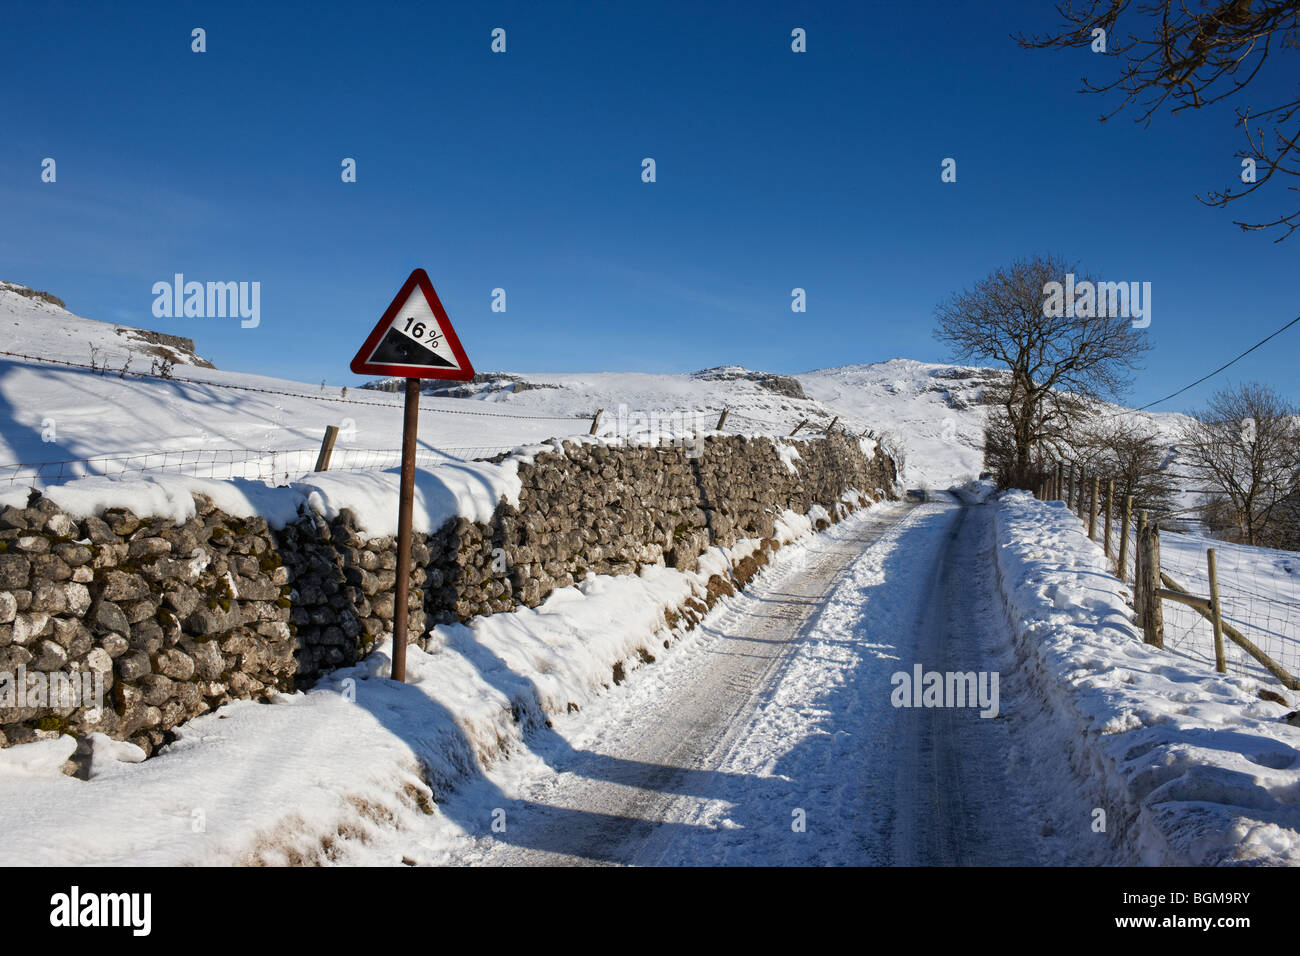 An icy, snow covered road with a 16% gradient warning sign - Stock Image